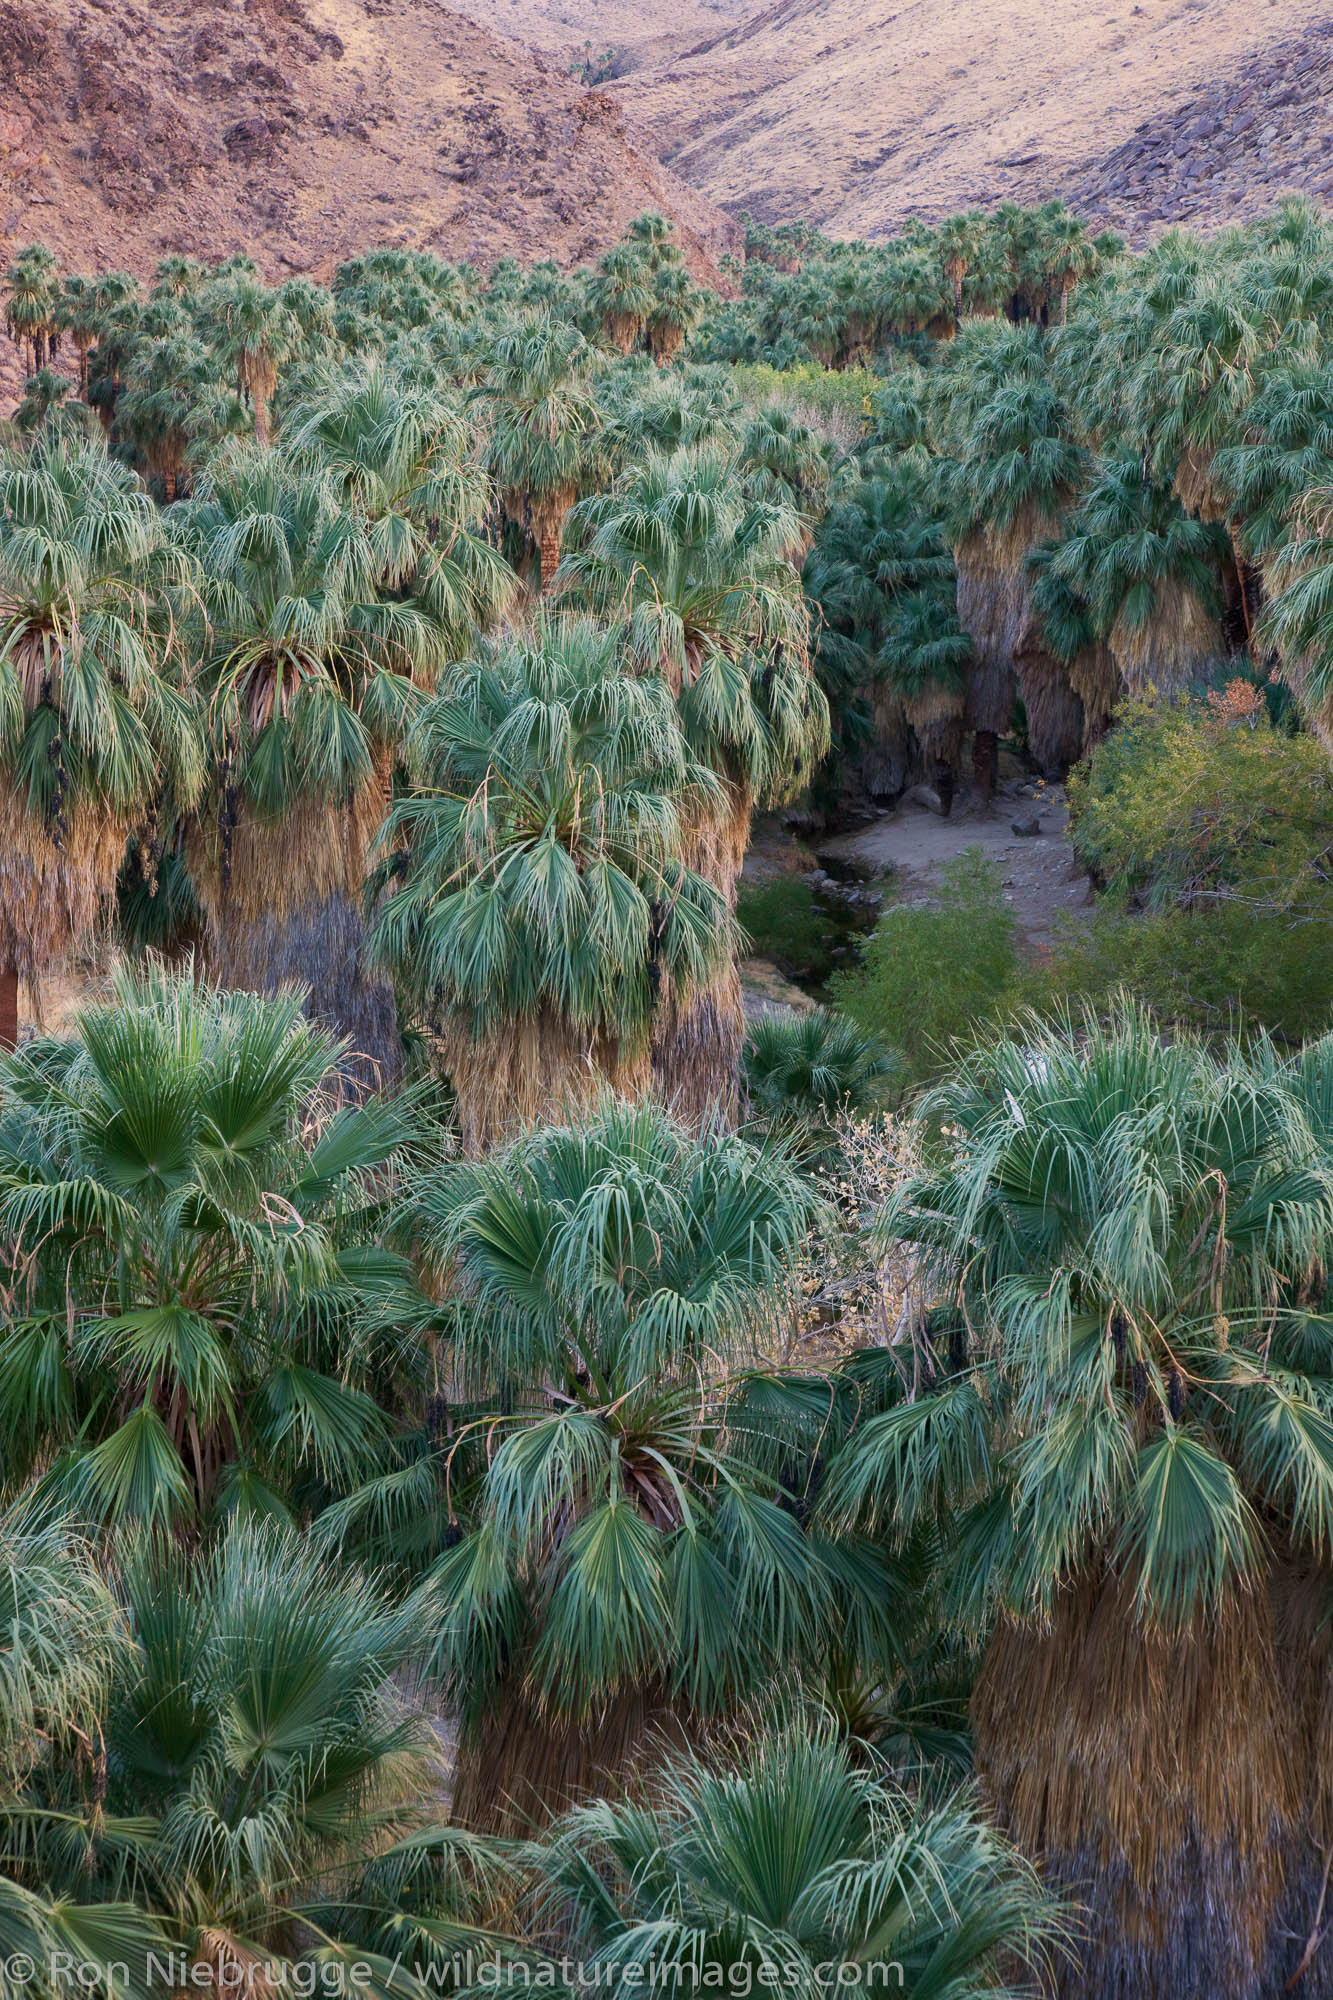 Palm Canyon, part of the Indian Canyons in the Agua Caliente Indian Reservation, near Palm Springs, California.